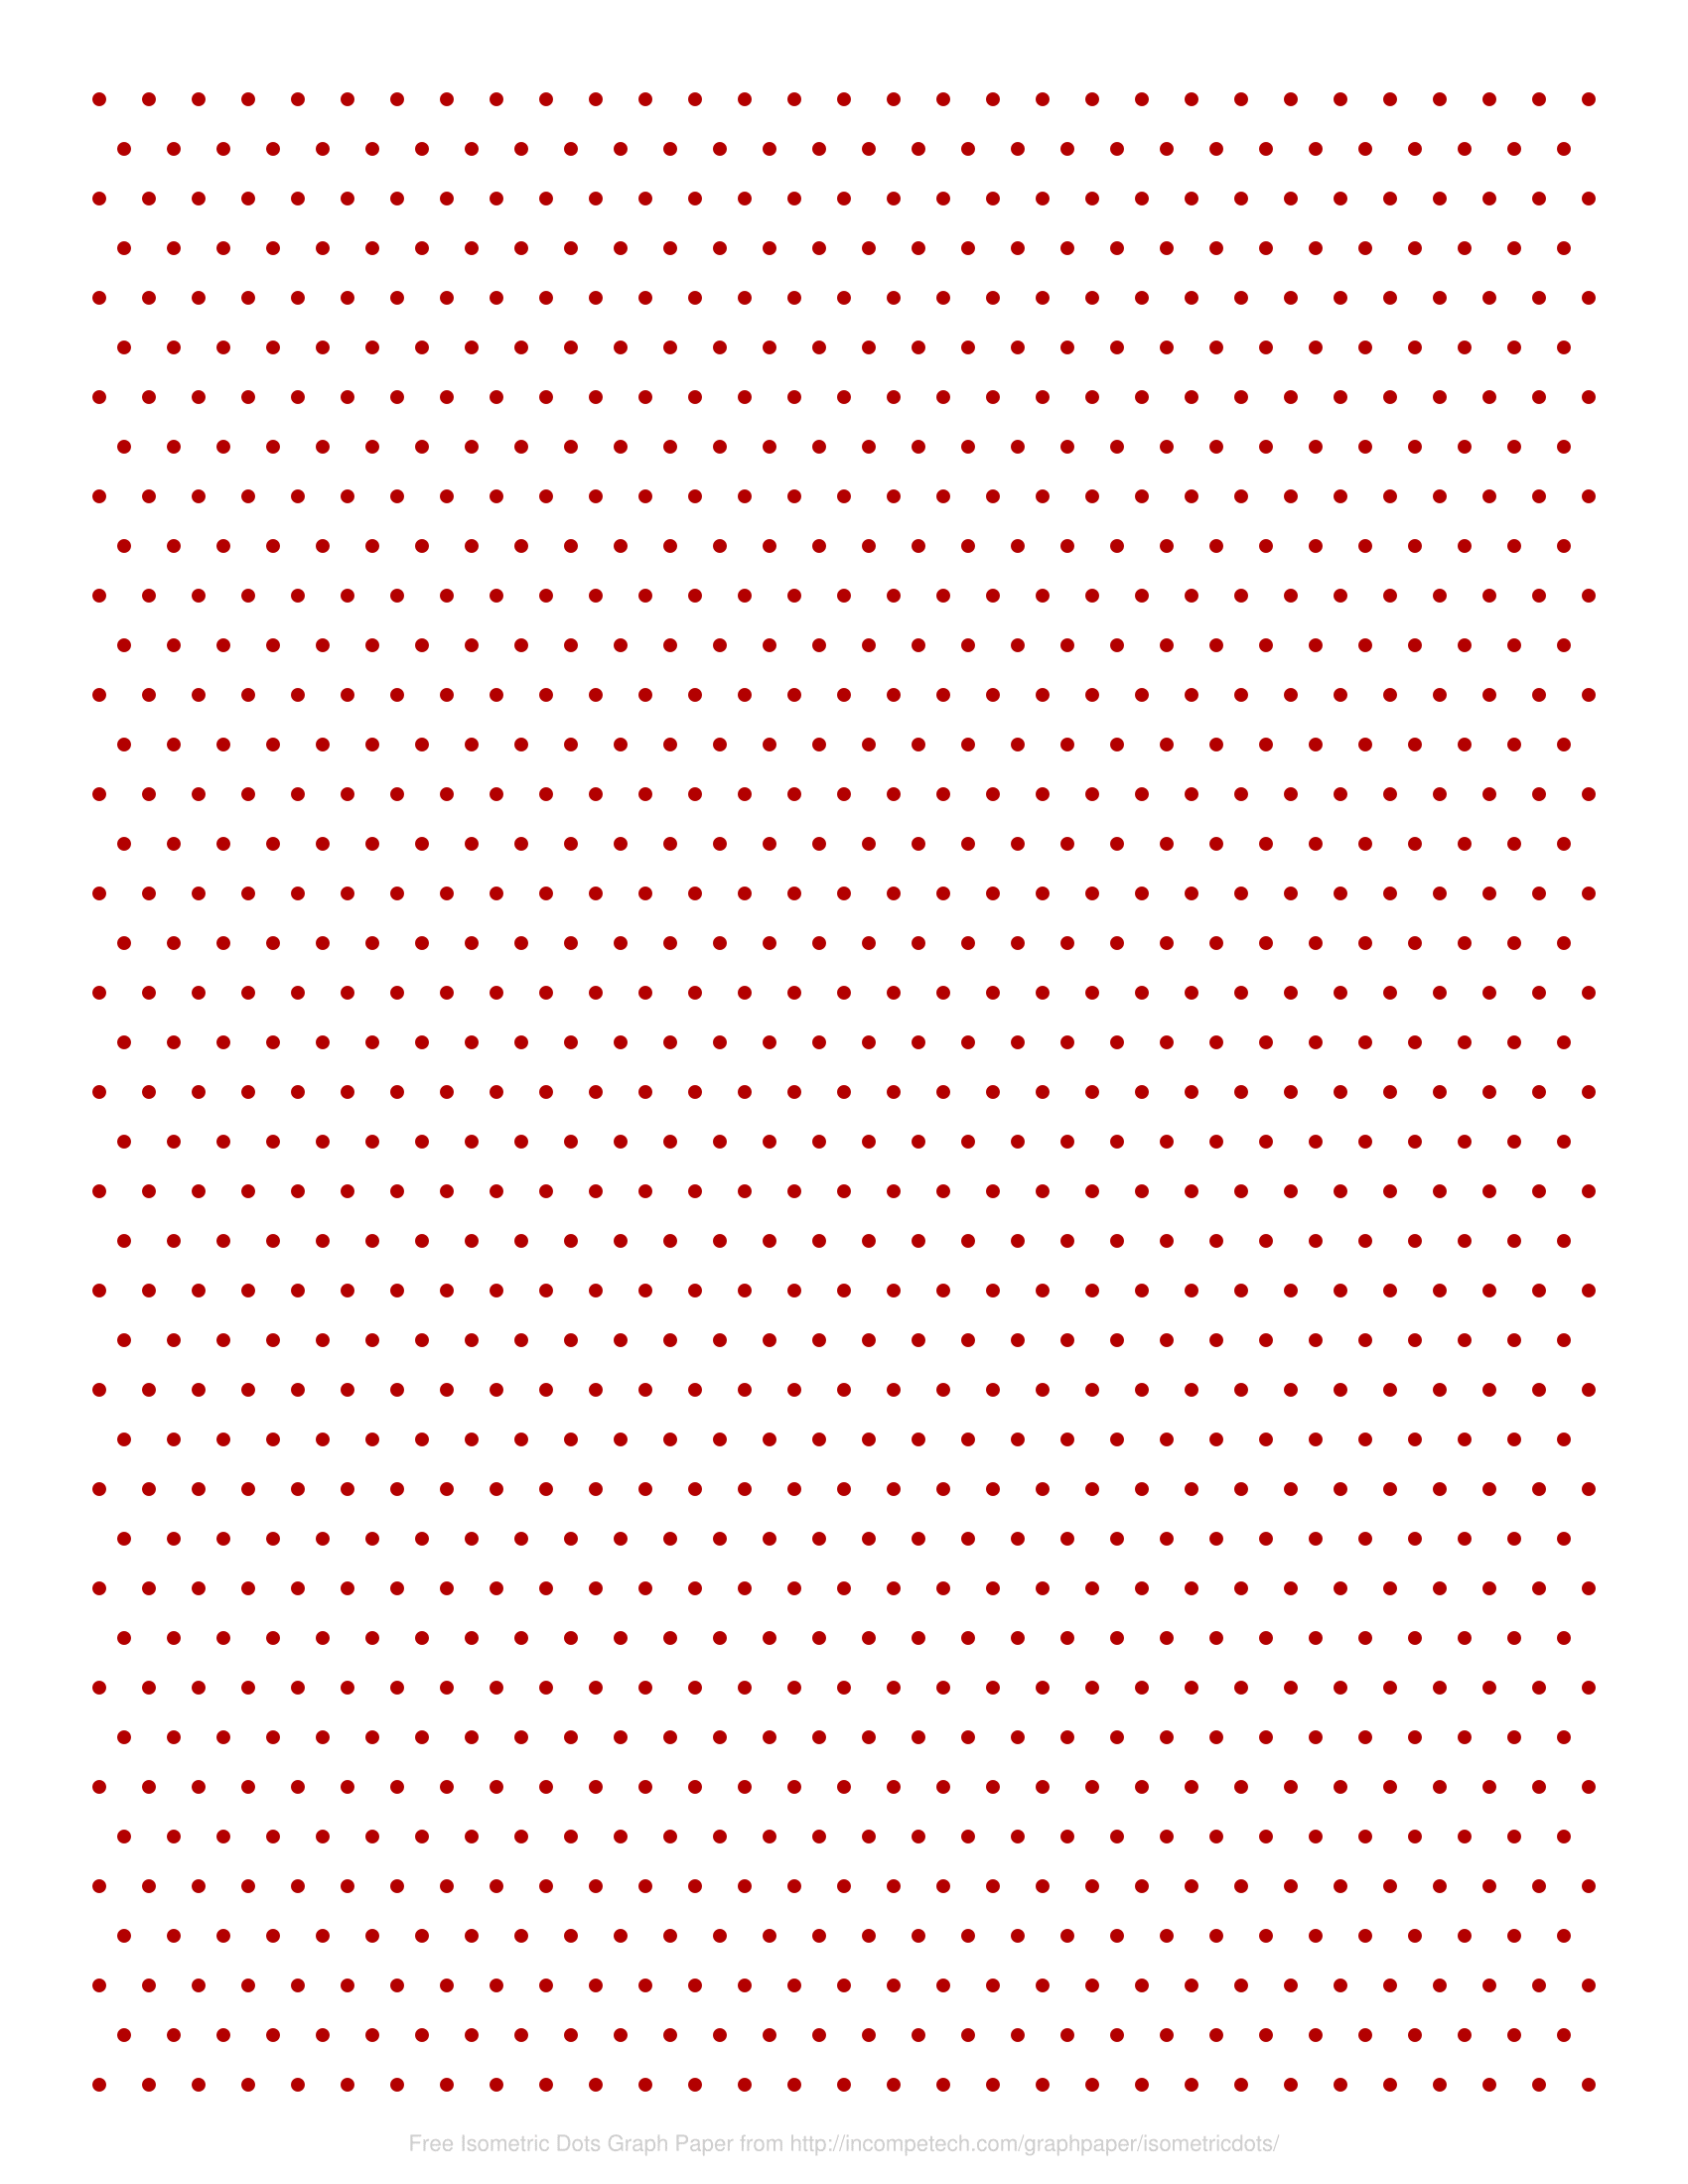 Free Online Graph Paper Isometric Dots